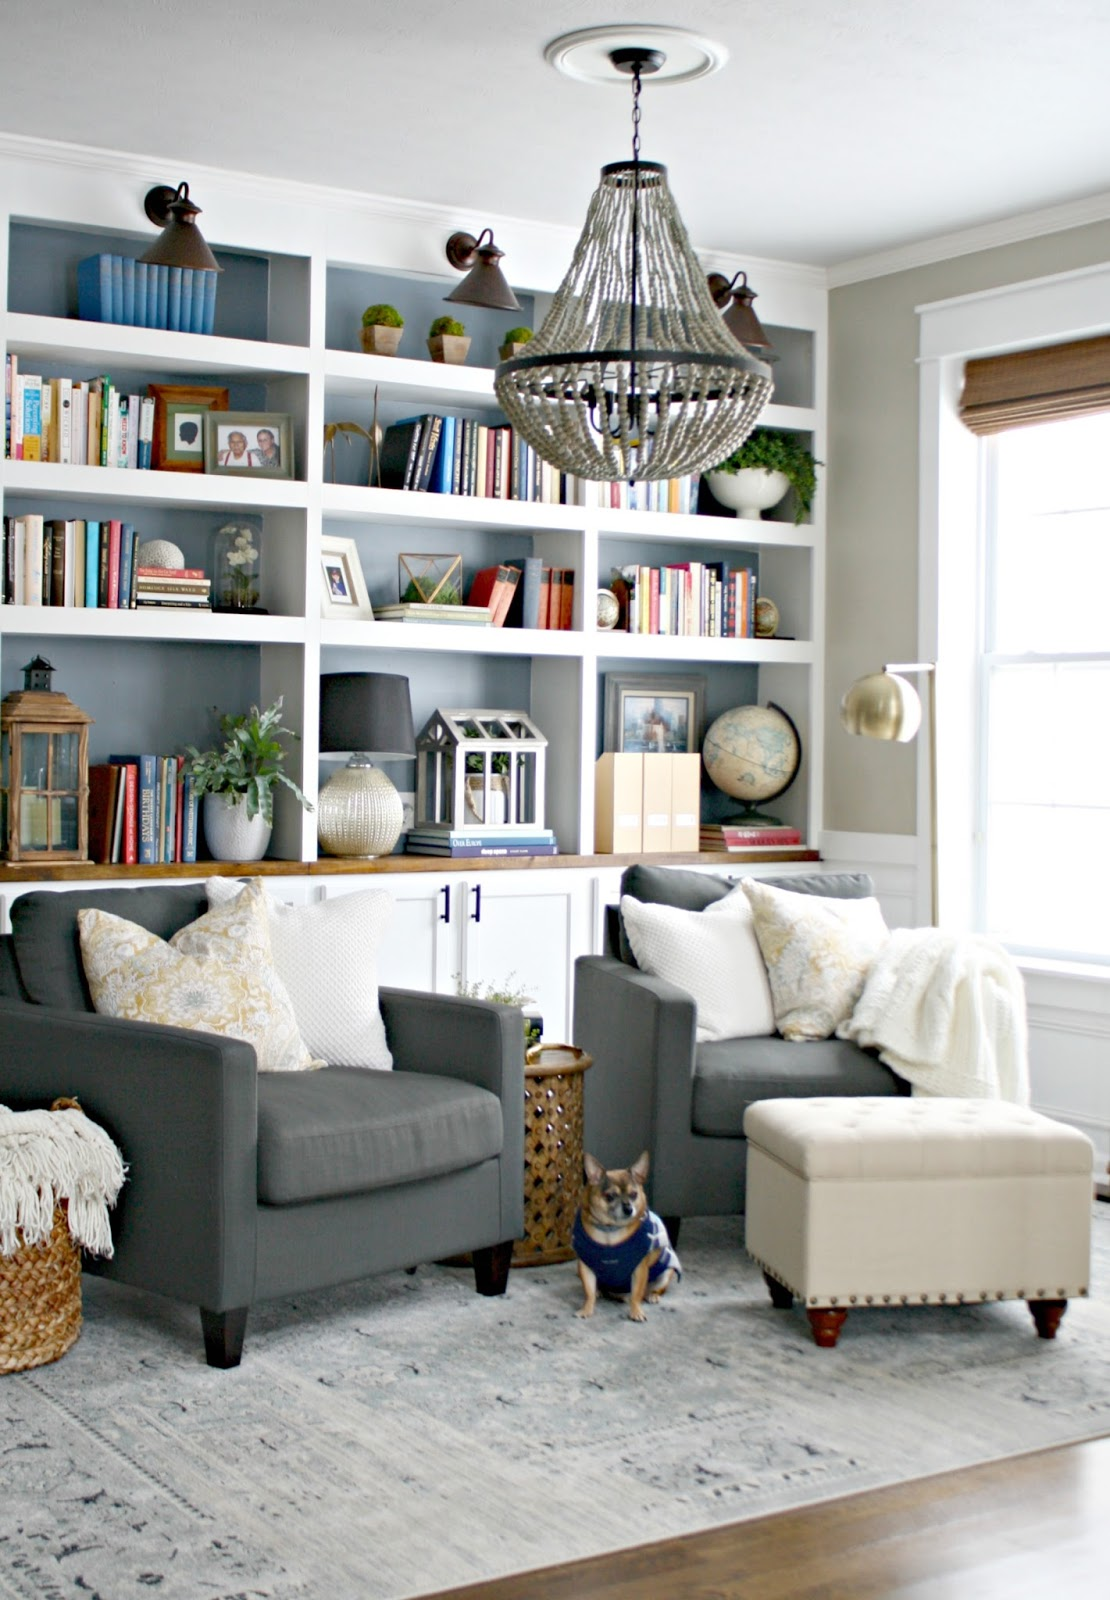 Living Room Library Design Ideas: The Library Is Complete! (for Real This Time) From Thrifty